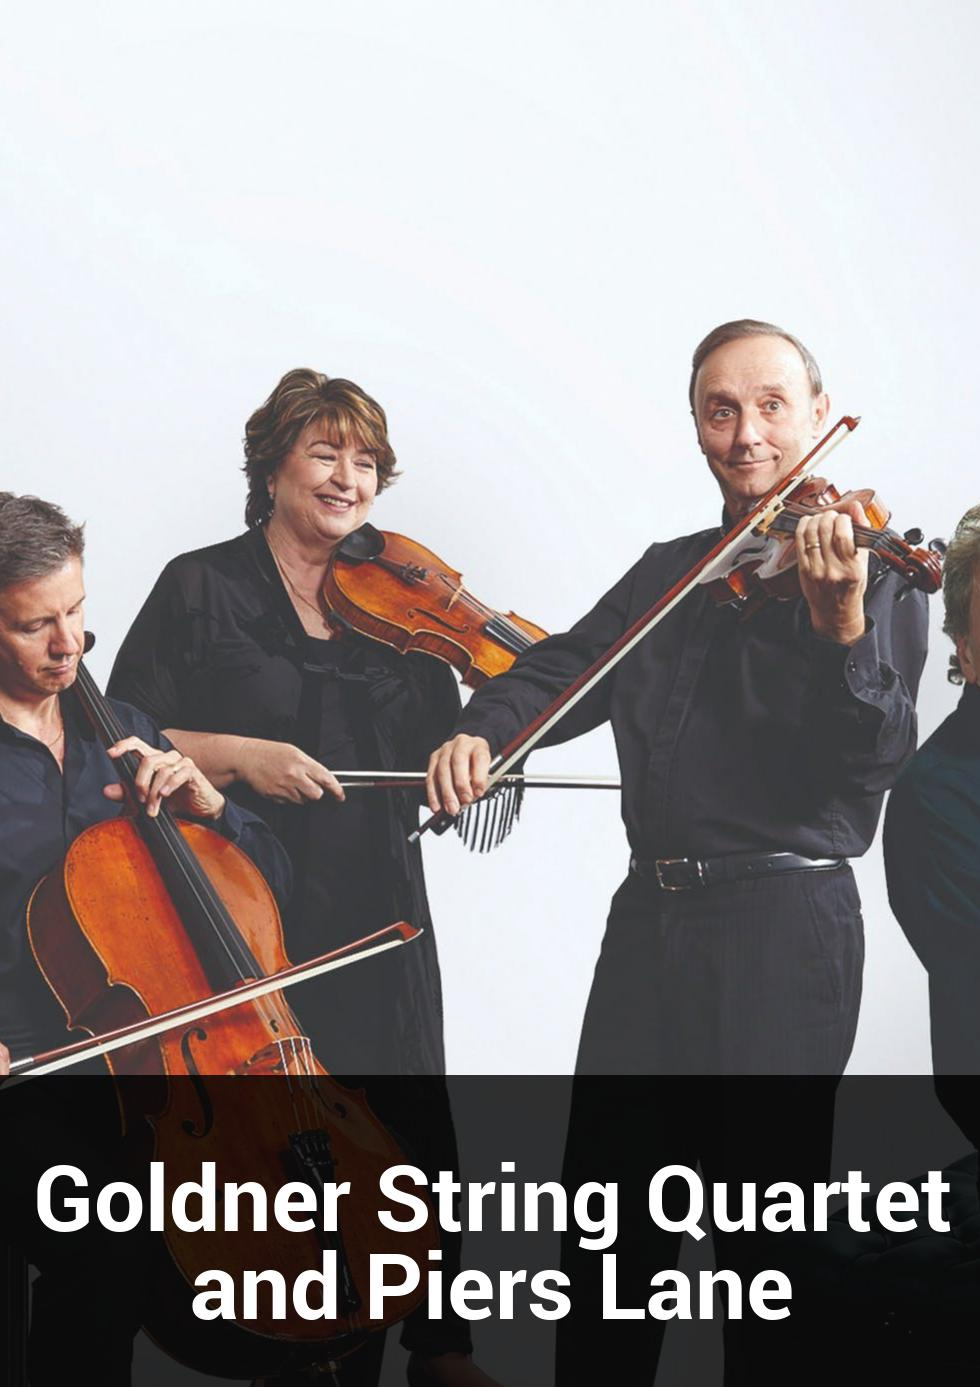 Goldner String Quartet and Piers Lane at Queensland Conservatorium Griffith University